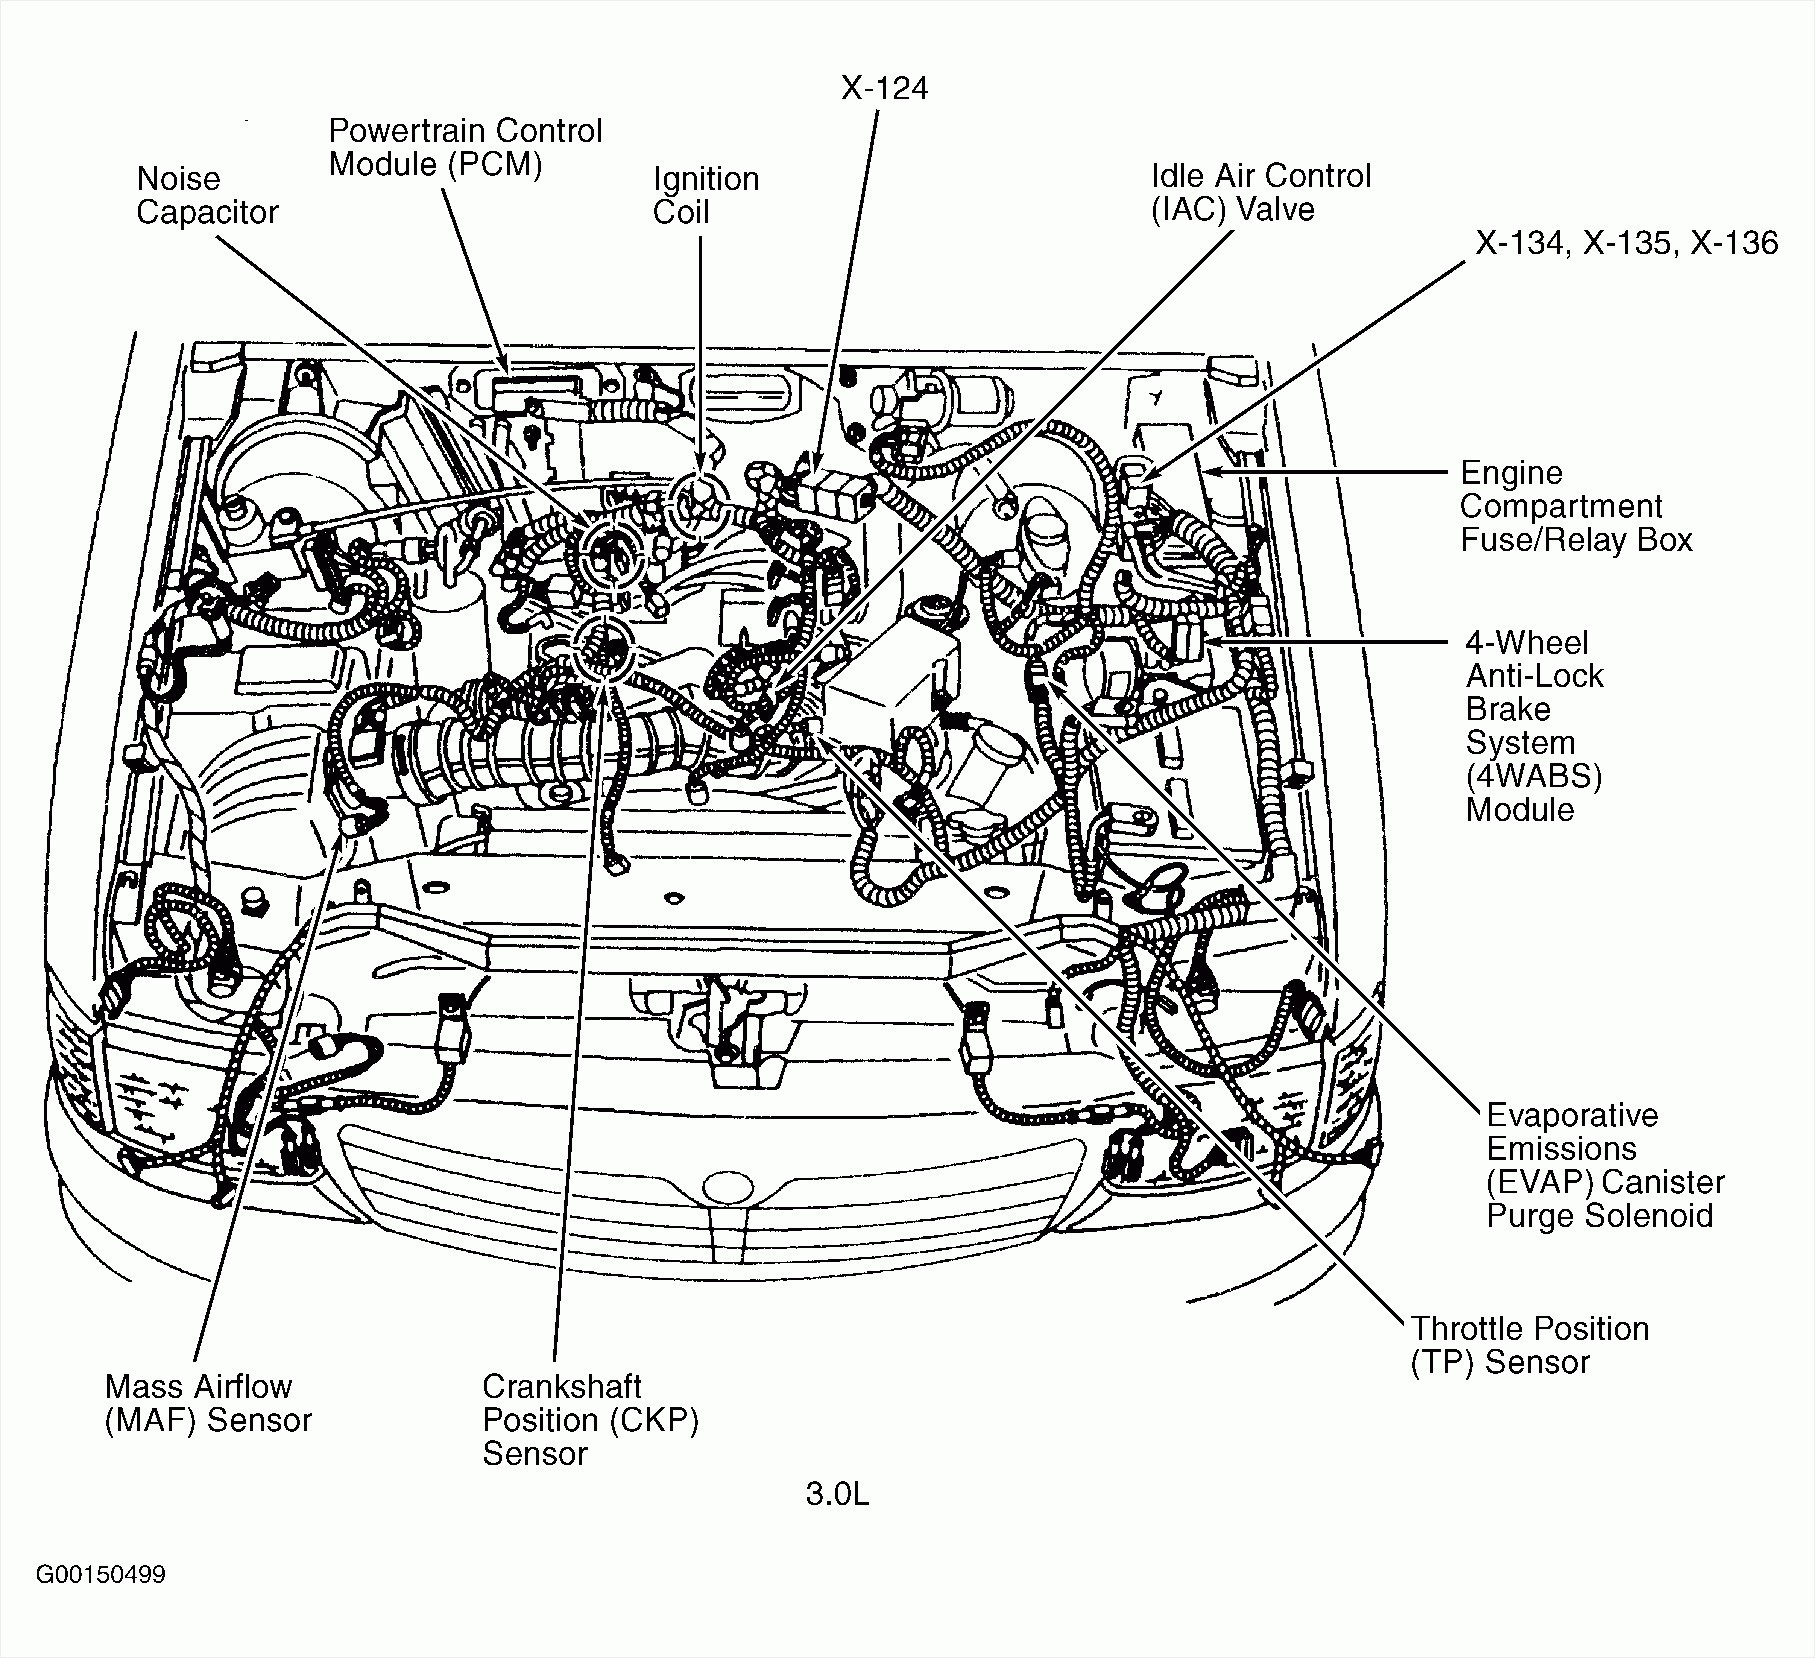 hight resolution of ford aerostar engine diagram on 2000 ford ranger 3 0 heater hose 2002 chevy venture engine diagram 2000 ford taurus heater hose diagram